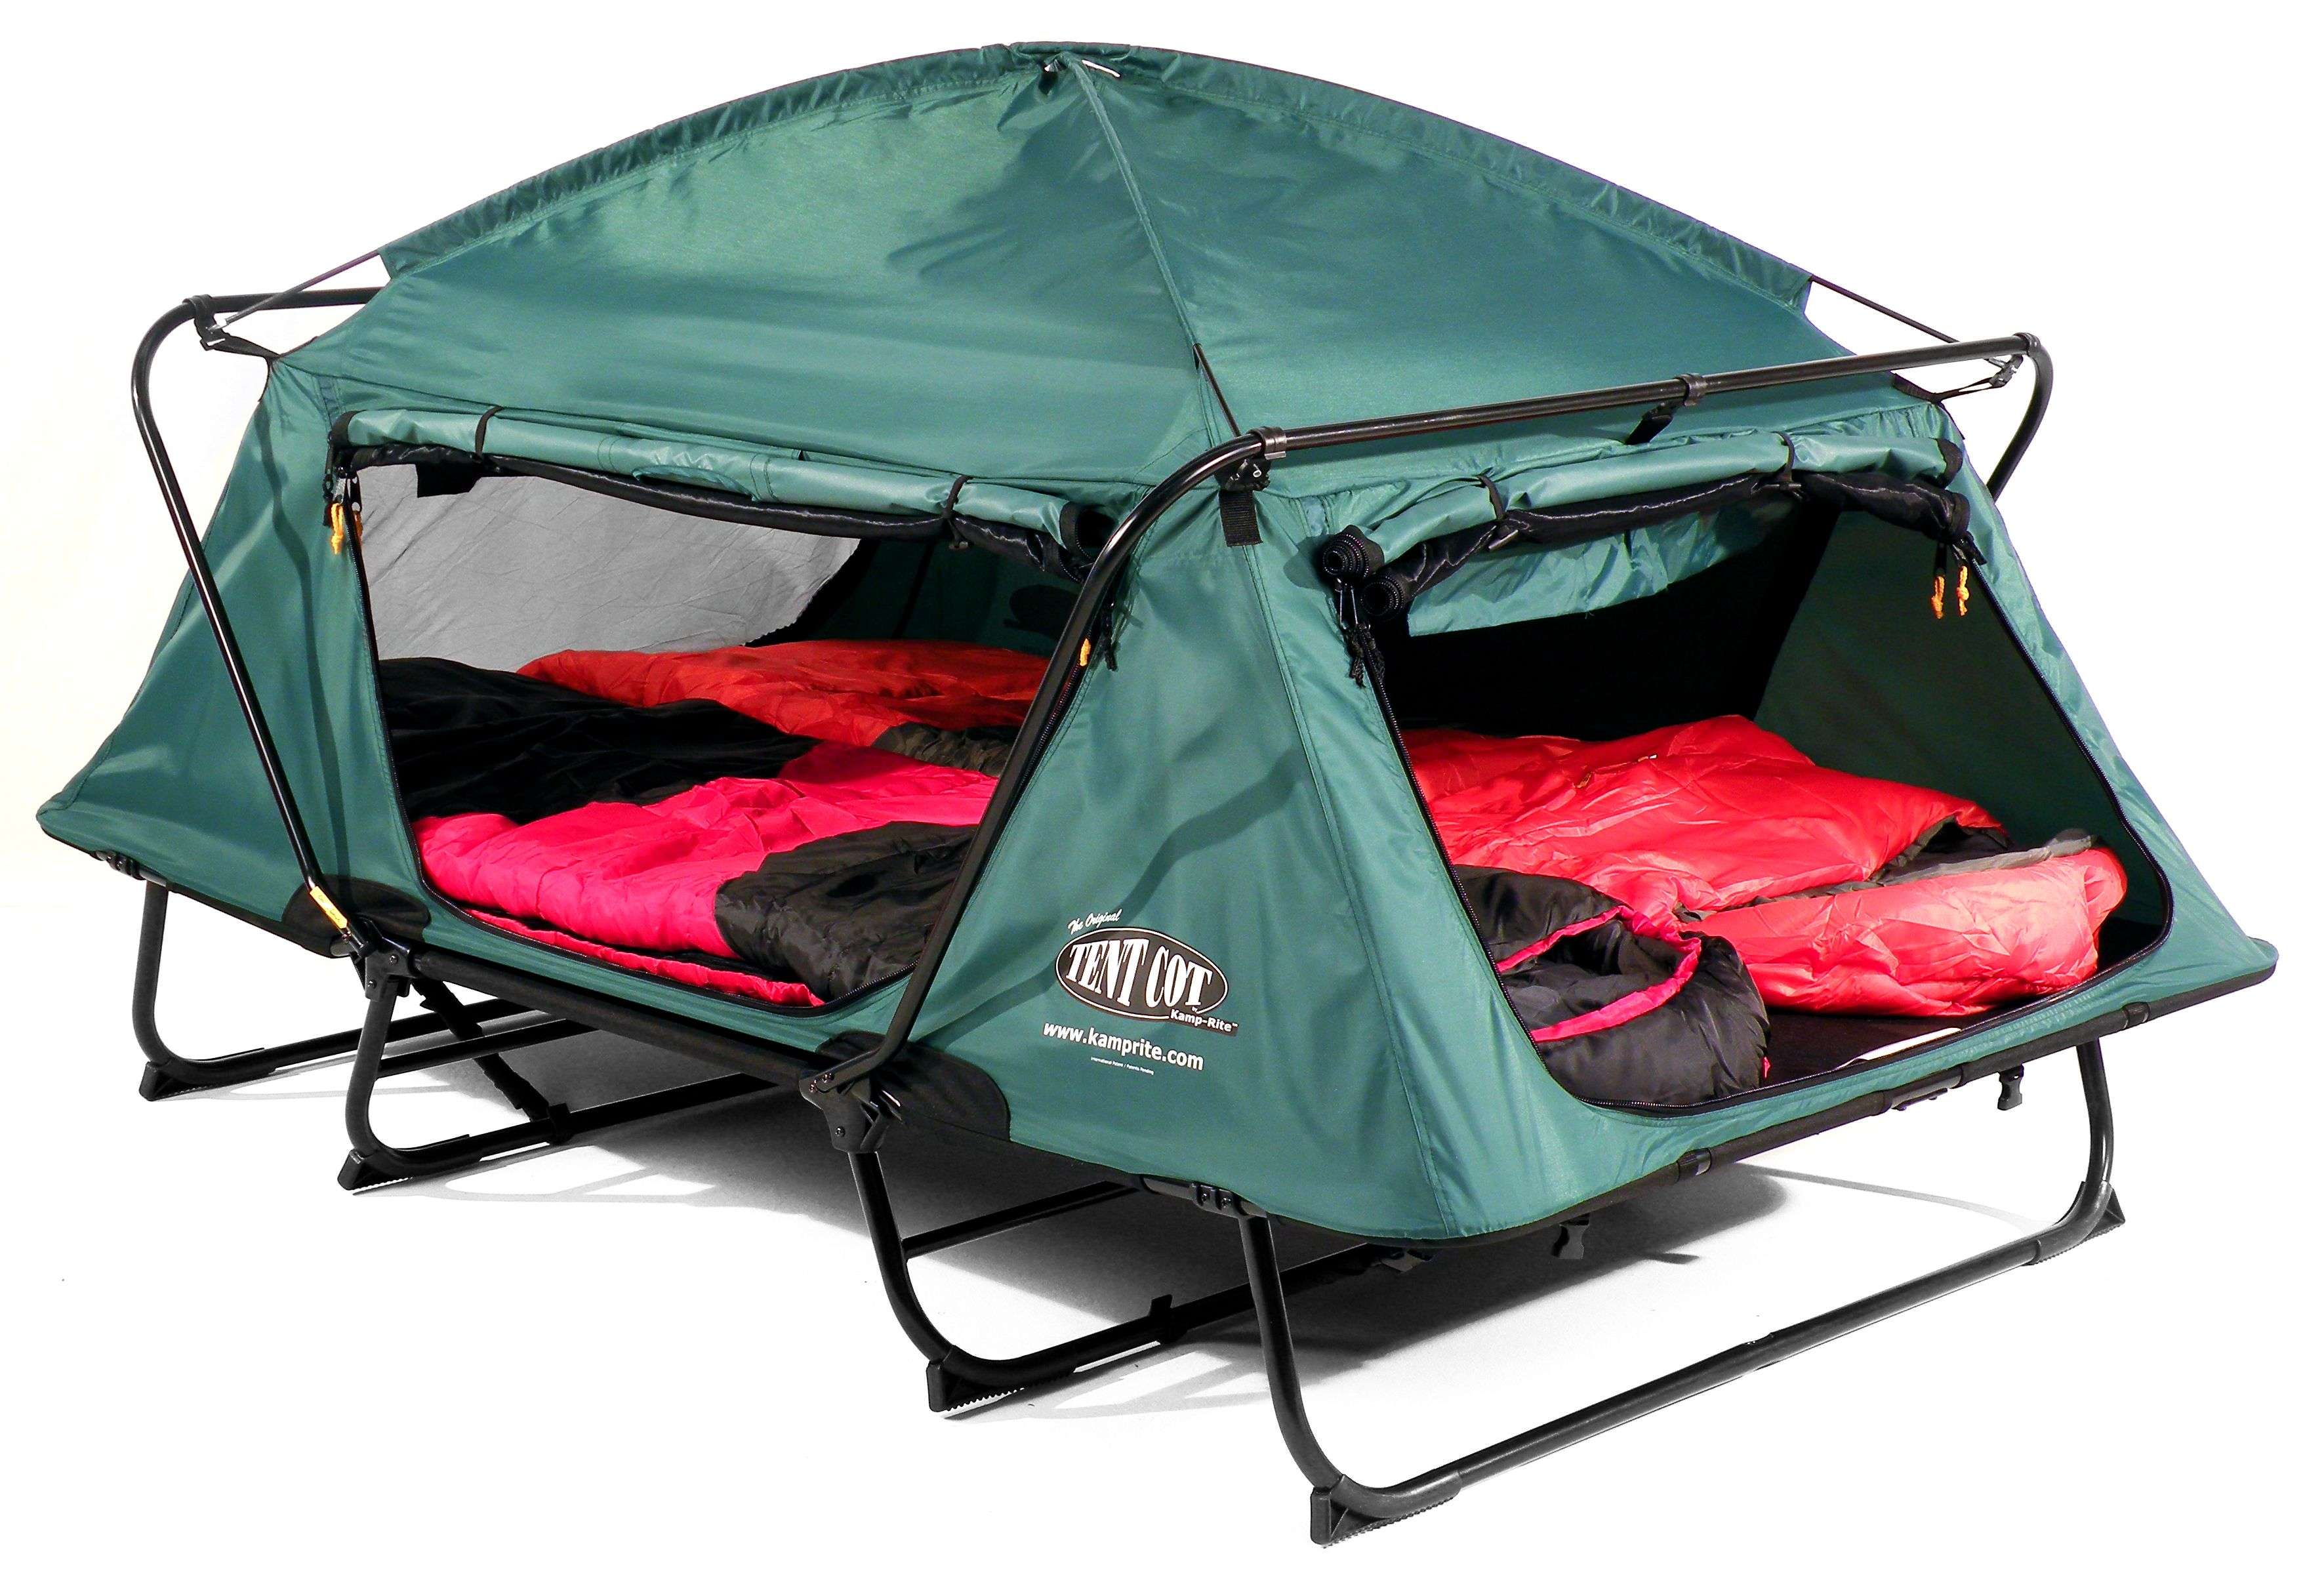 K&-Rite-Double-Tent-Cot-1  sc 1 st  Pinterest & Kamp-Rite-Double-Tent-Cot-1 | Gifts for Him | Pinterest